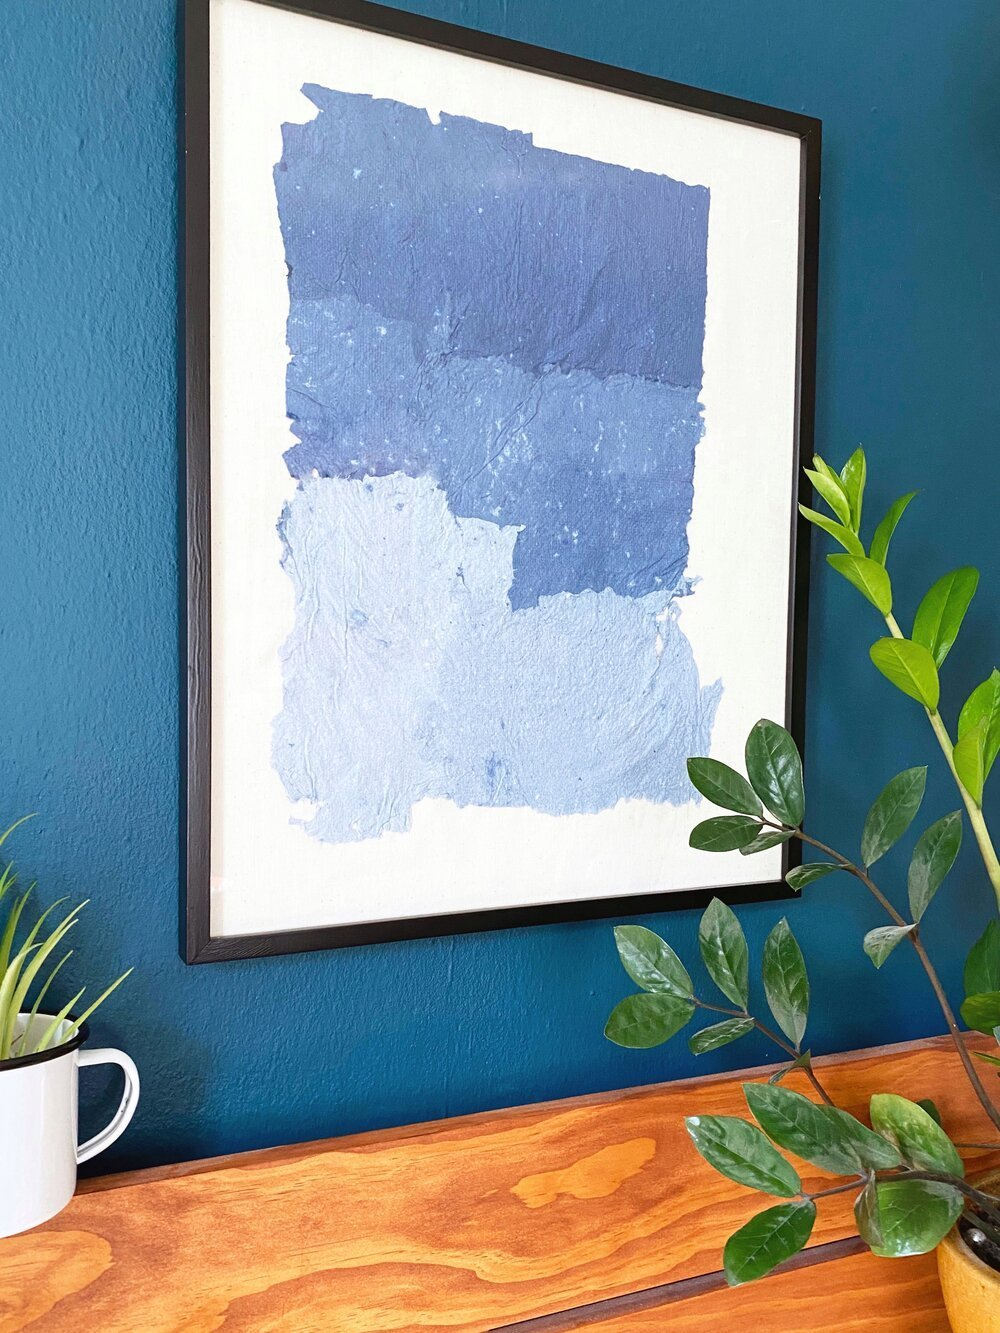 Collect all your paper scraps and create a work of art! #wallart #papermaking #howtomakepaper #apartmentliving #smallspaces #hgtv #hgtvhandmade #easycrafts #art #colorblocking #upcycle